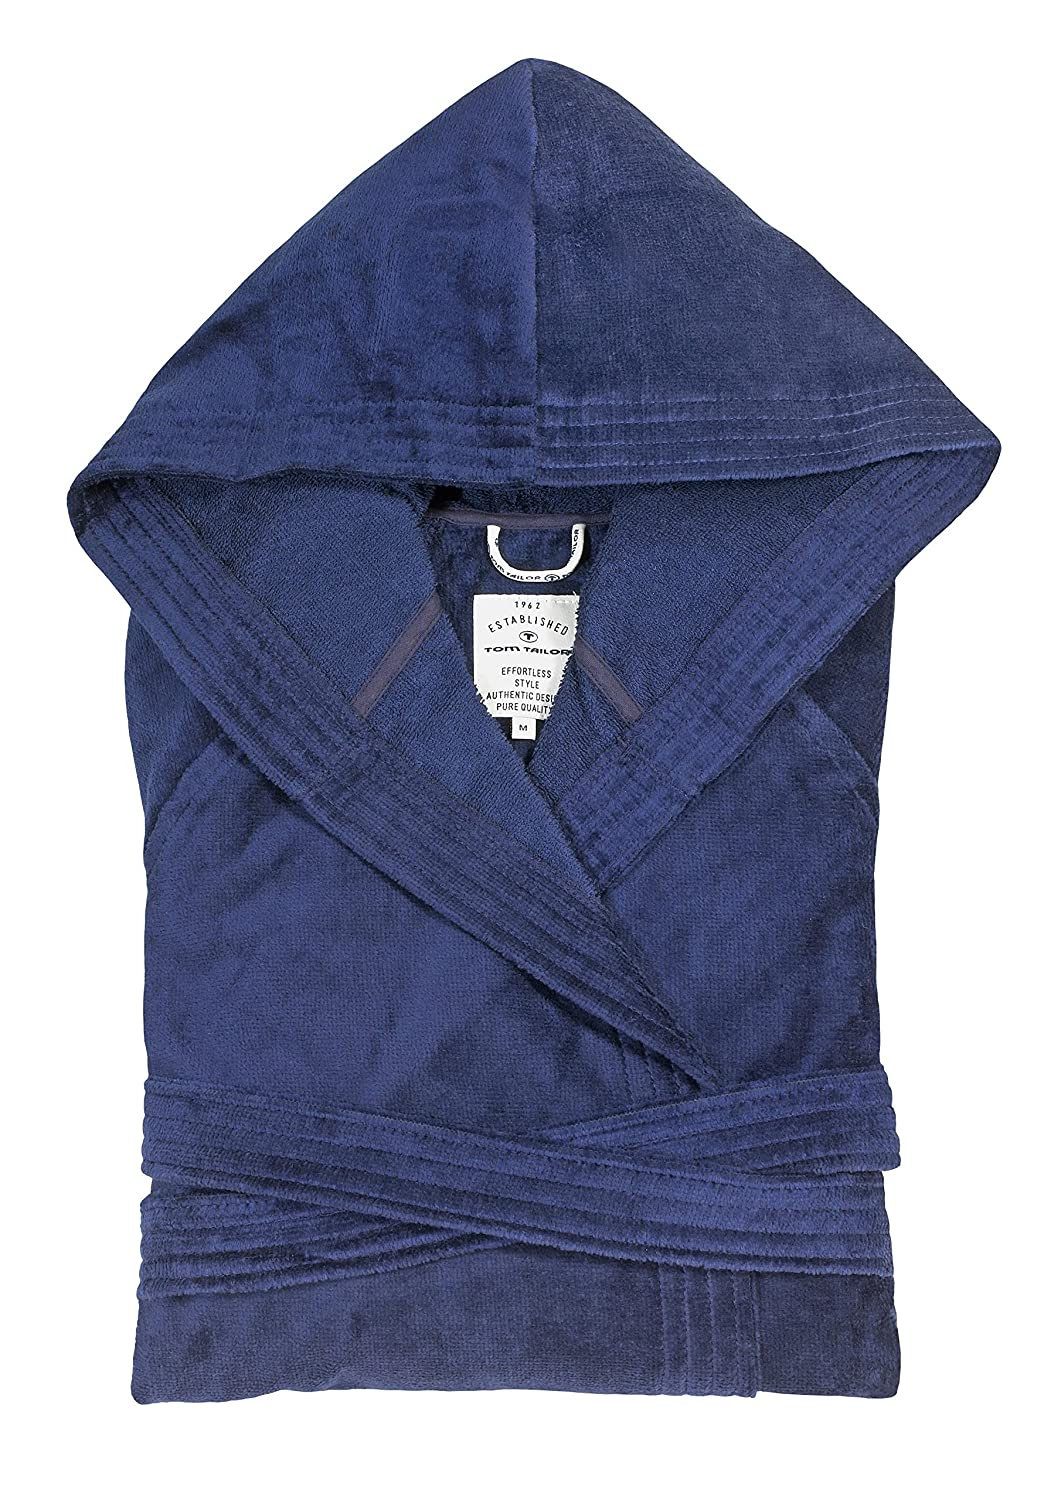 "Tom Tailor 110401/900/700 ""basic velours"" bath robe with hood, Cotton, navy, Small 0110401/908/701/778"